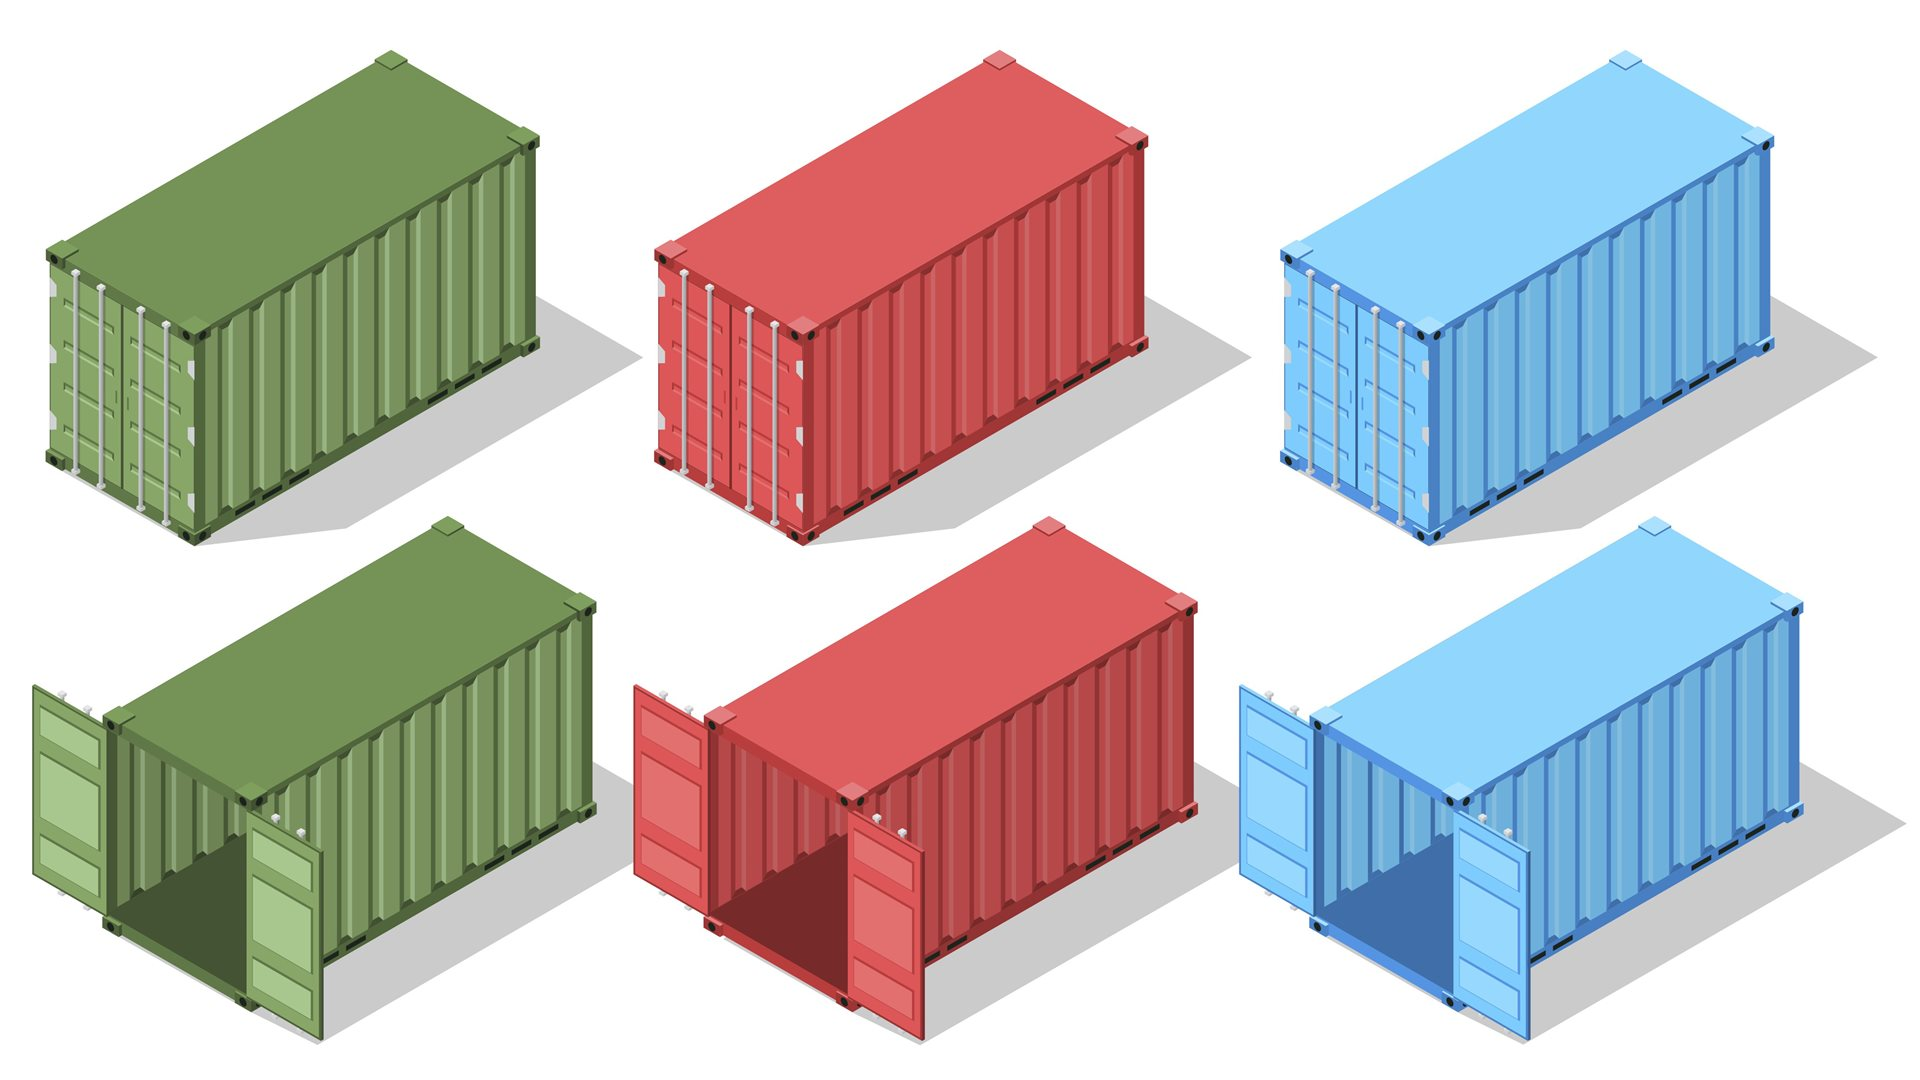 Colorful shipping containers against a white background.